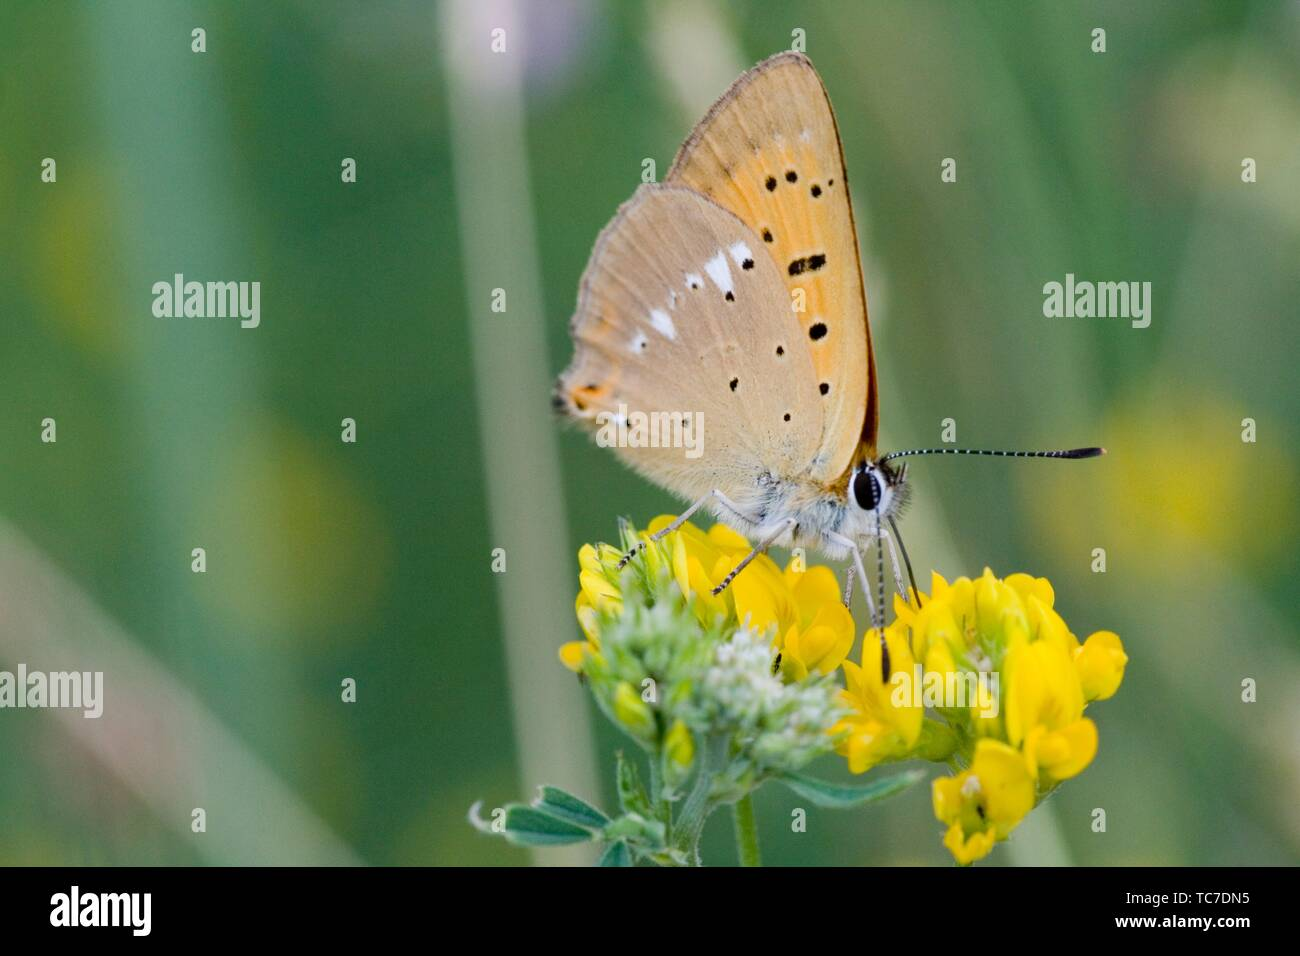 Scarce Copper, Lycaena virgaureae, a showy copper butterfly with white markings on the back underwing, The upperwings can be fiery copper in Stock Photo